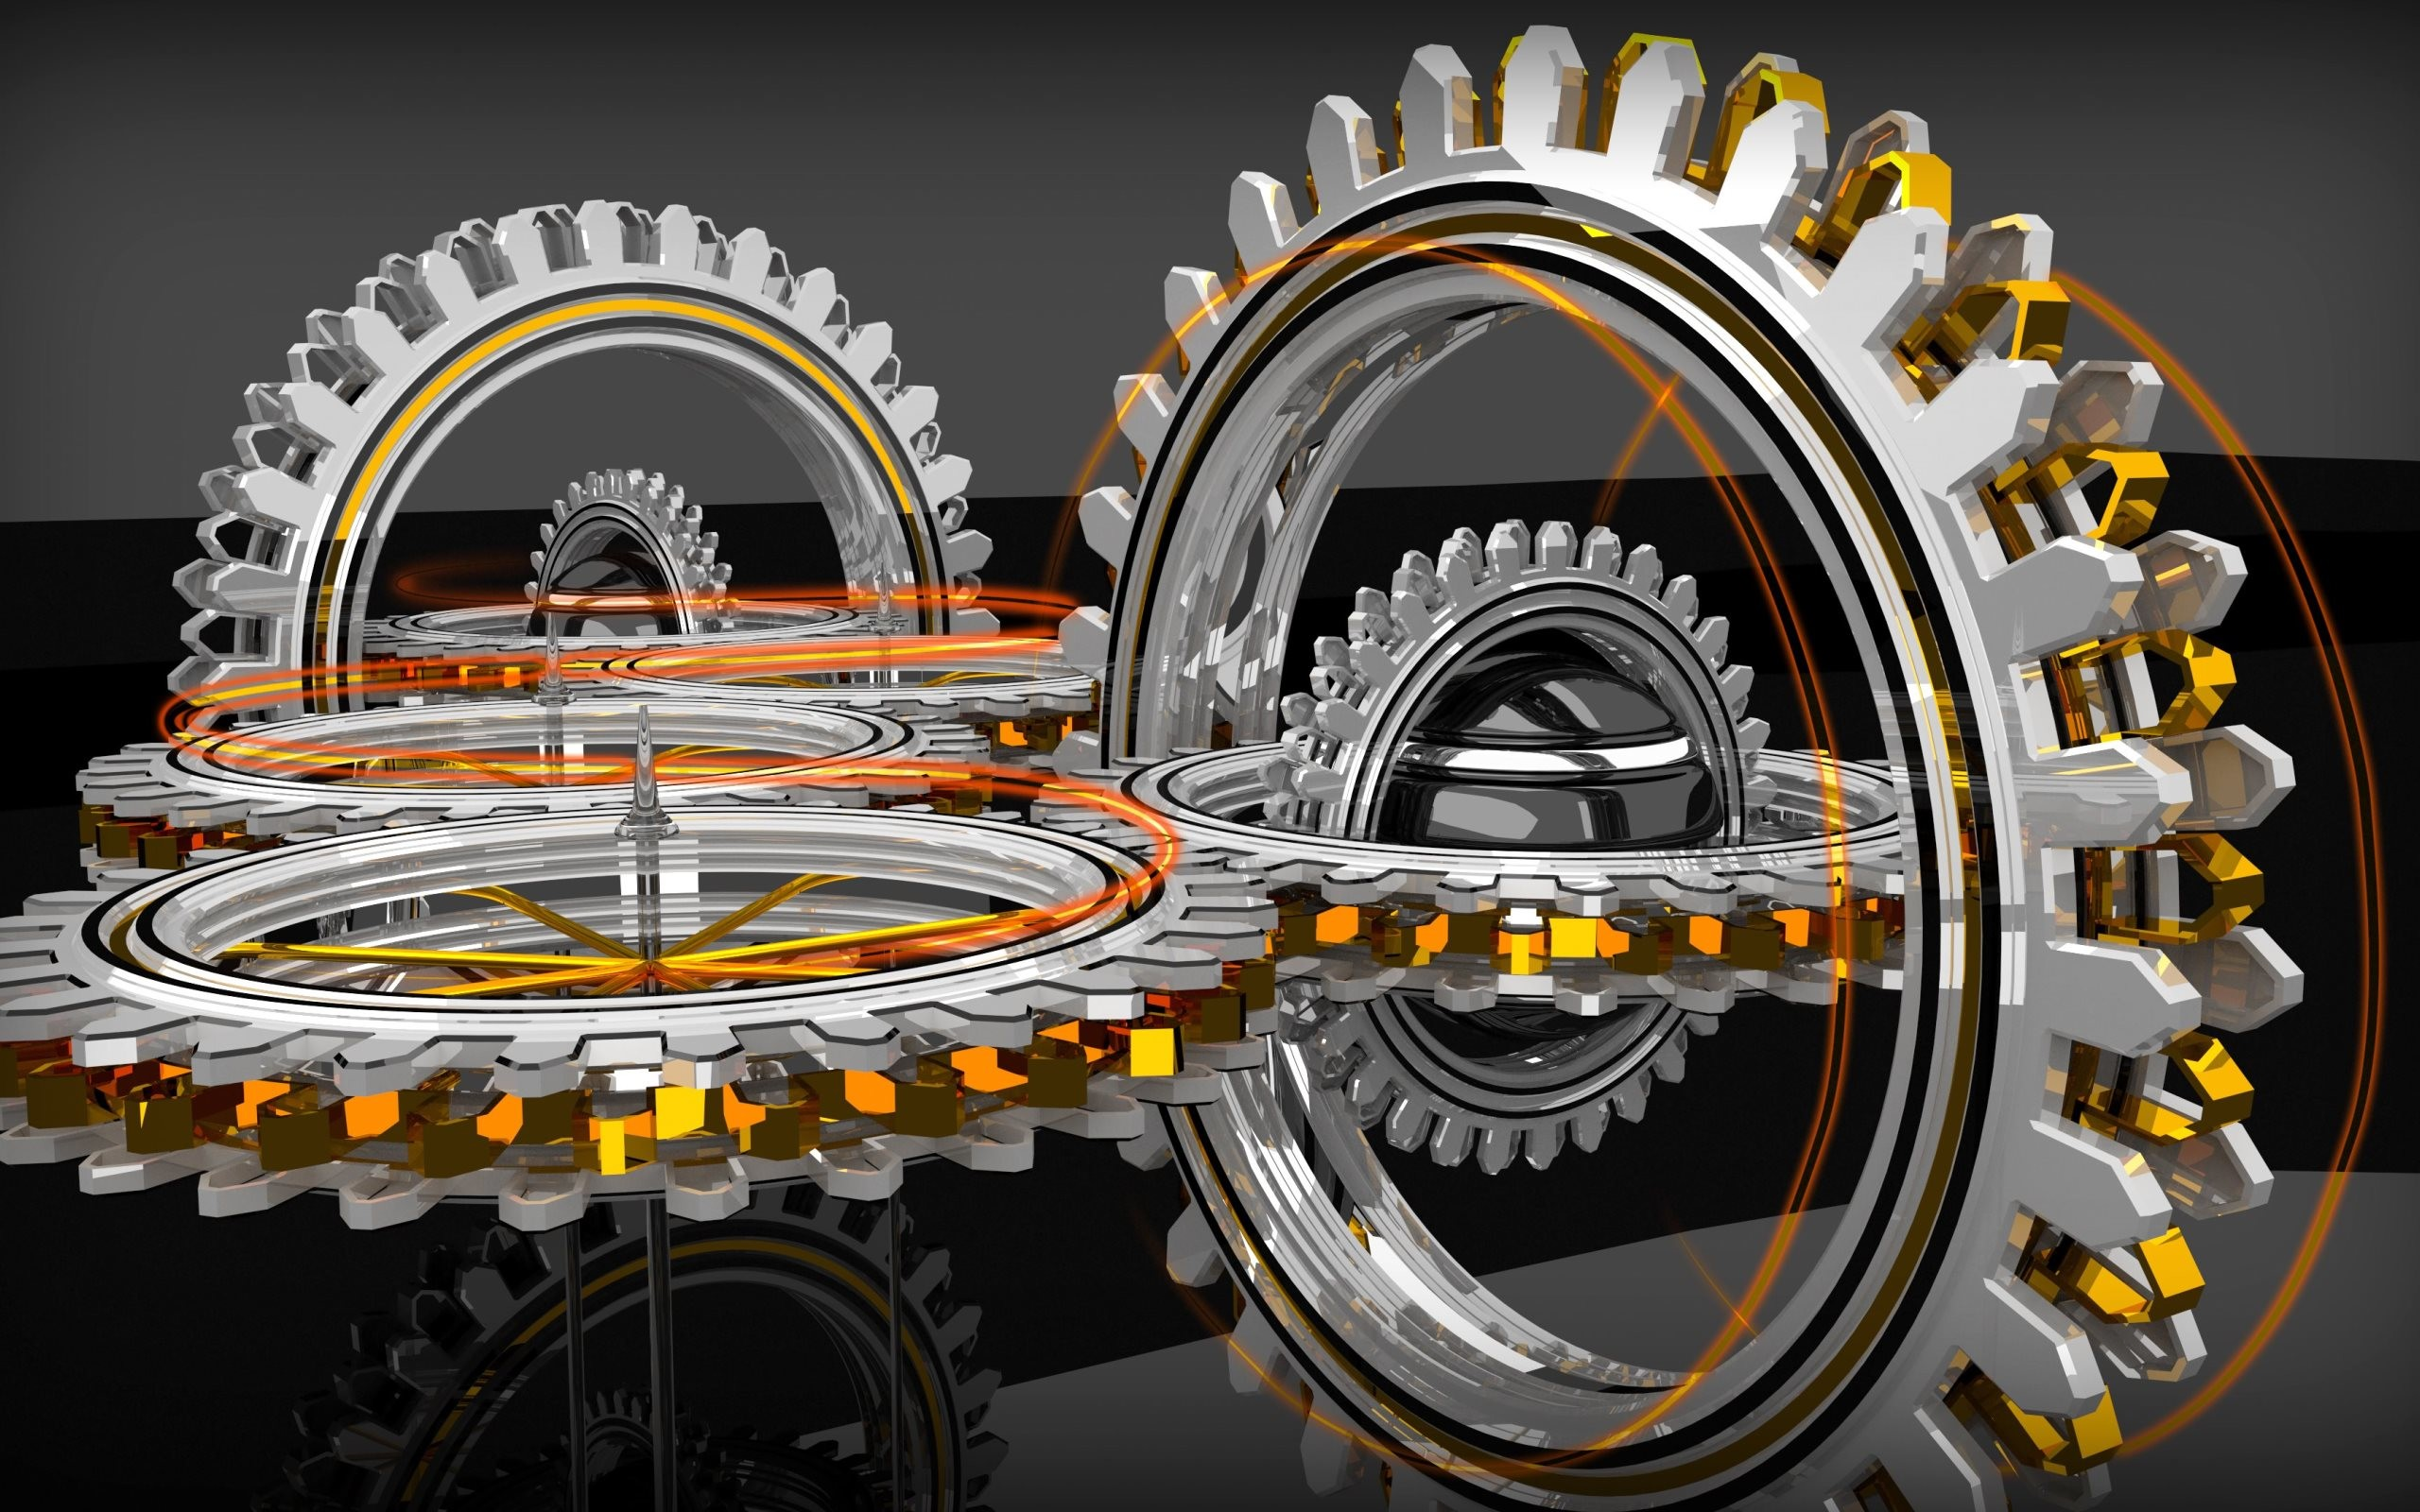 2560x1600 4K HD Wallpaper 3: Abstract 3D Concentric Gears